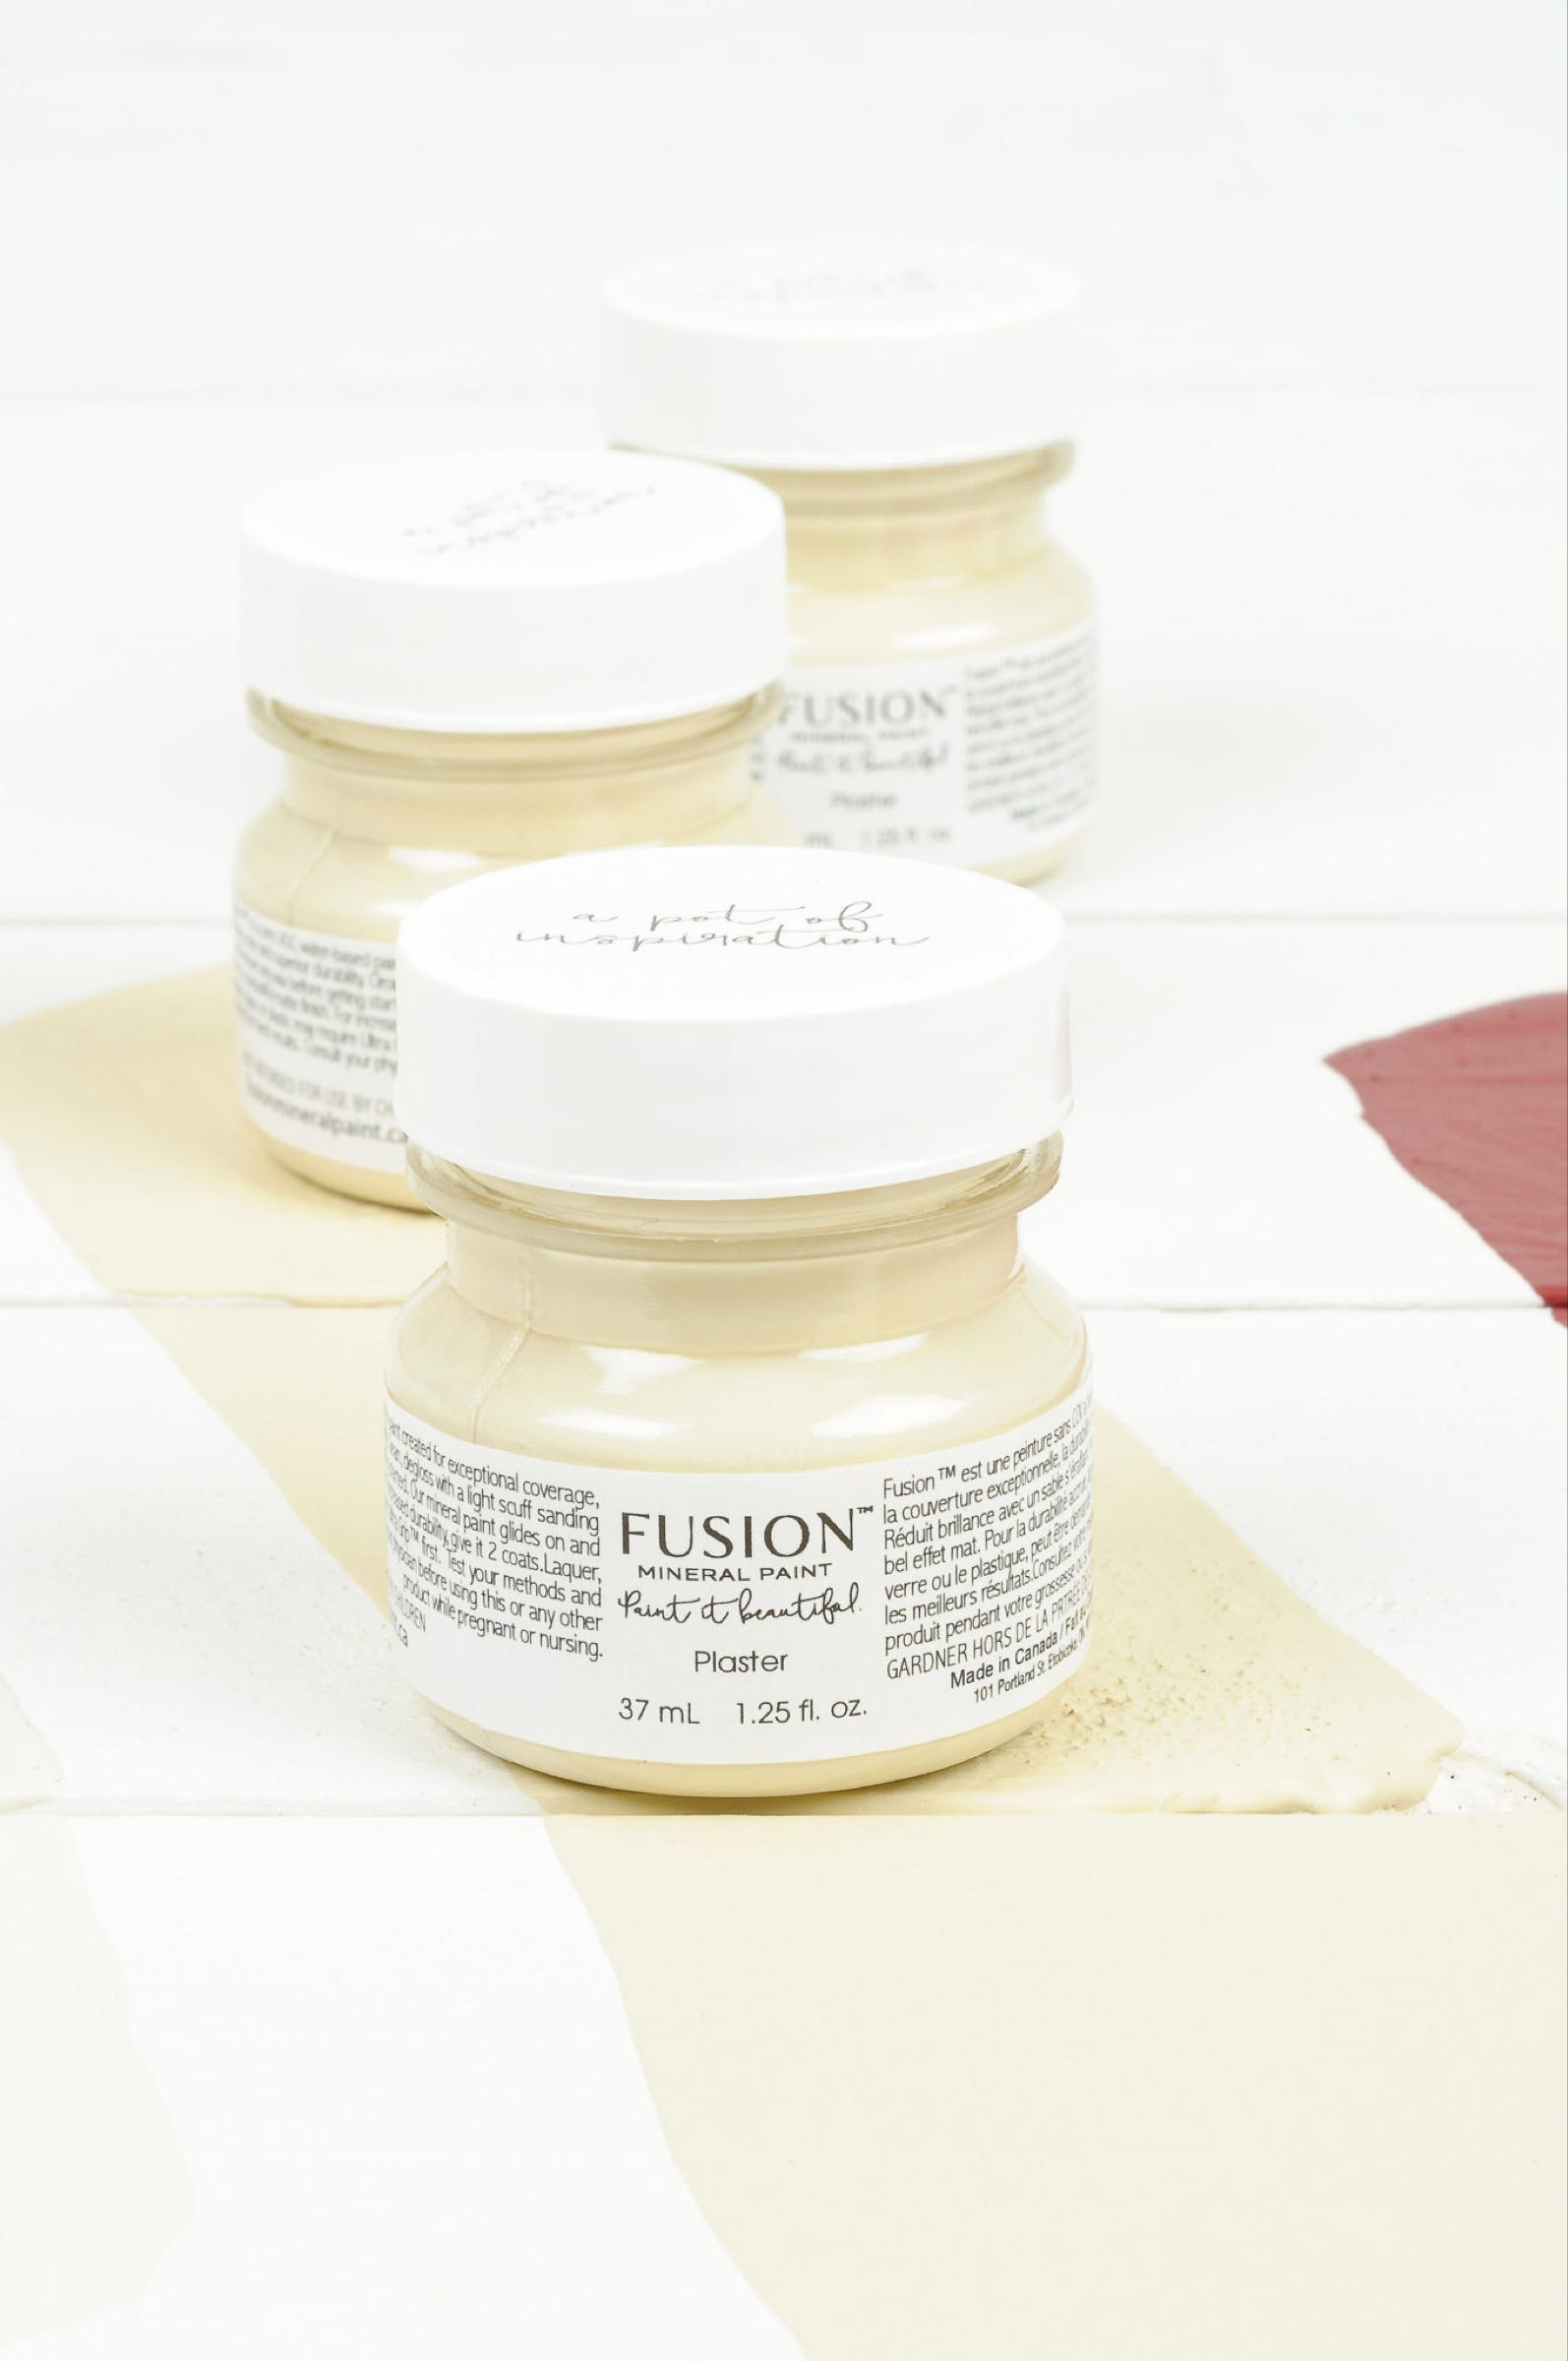 Fusion Mineral Paint 37ml Tester Pot - Classic Collection